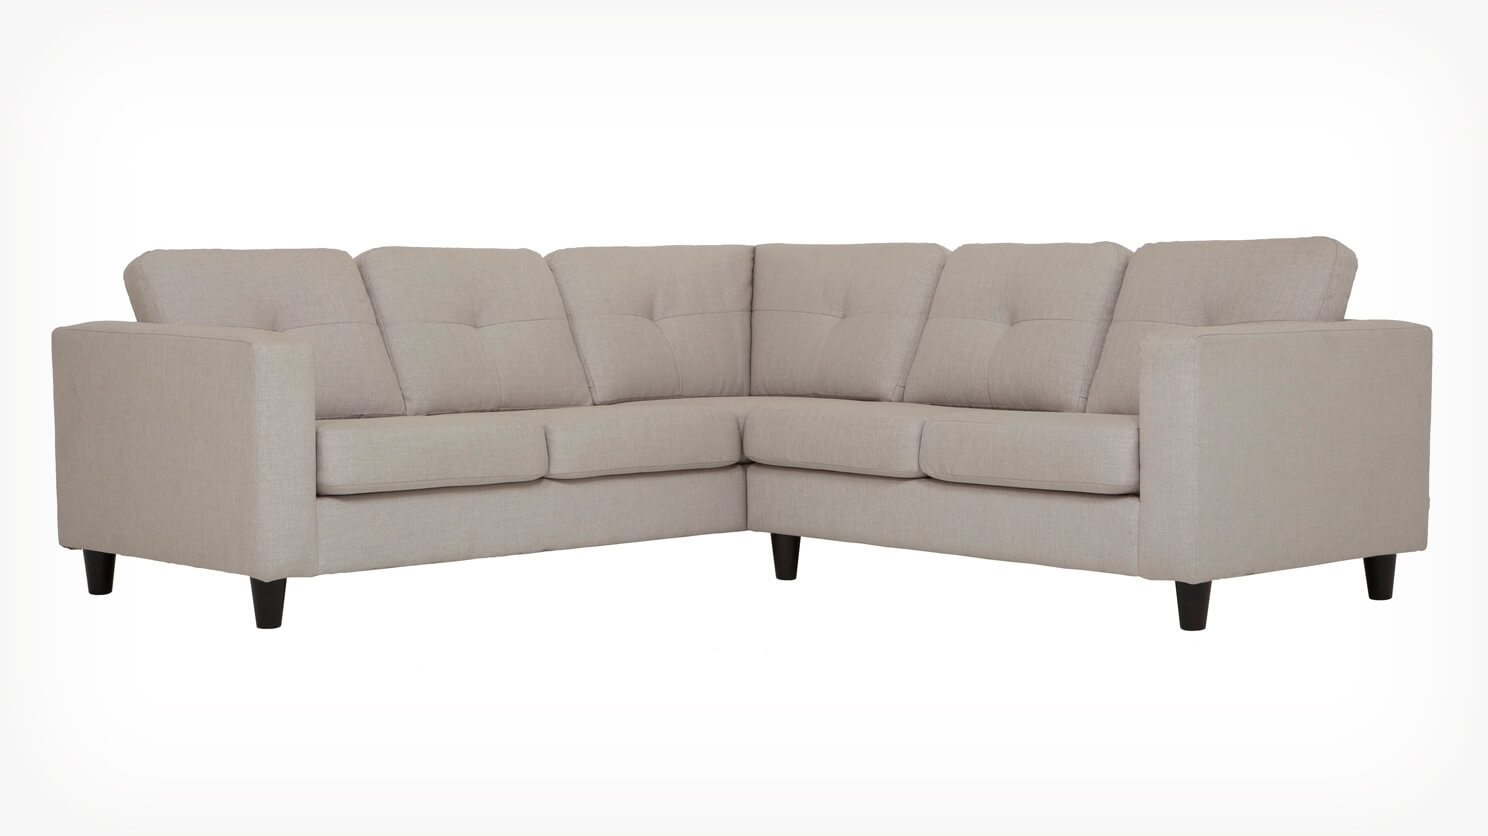 Fabric Sectional Sofas Canada Solo 2 Piece Sectional Sofa Fabric Eq3